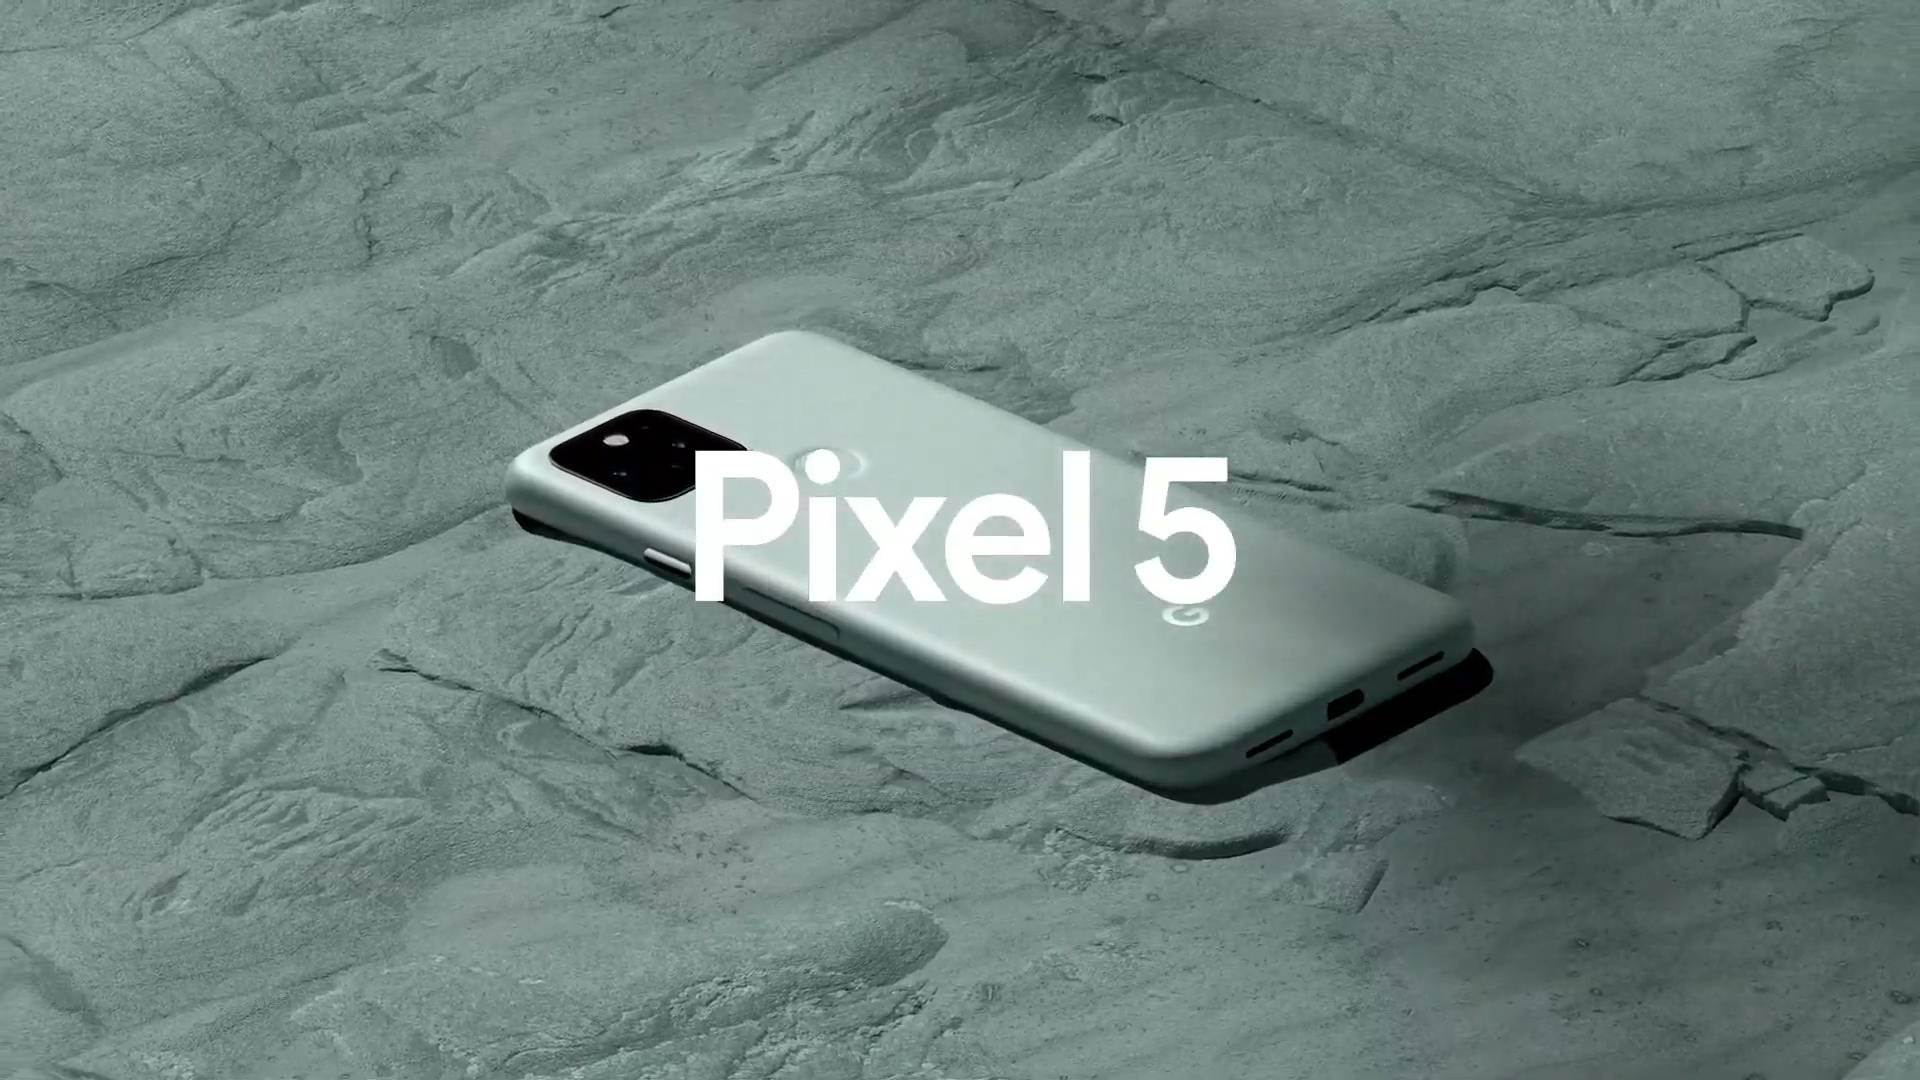 Google's $699 Pixel 5 and $499 Pixel 4a 5G are finally official